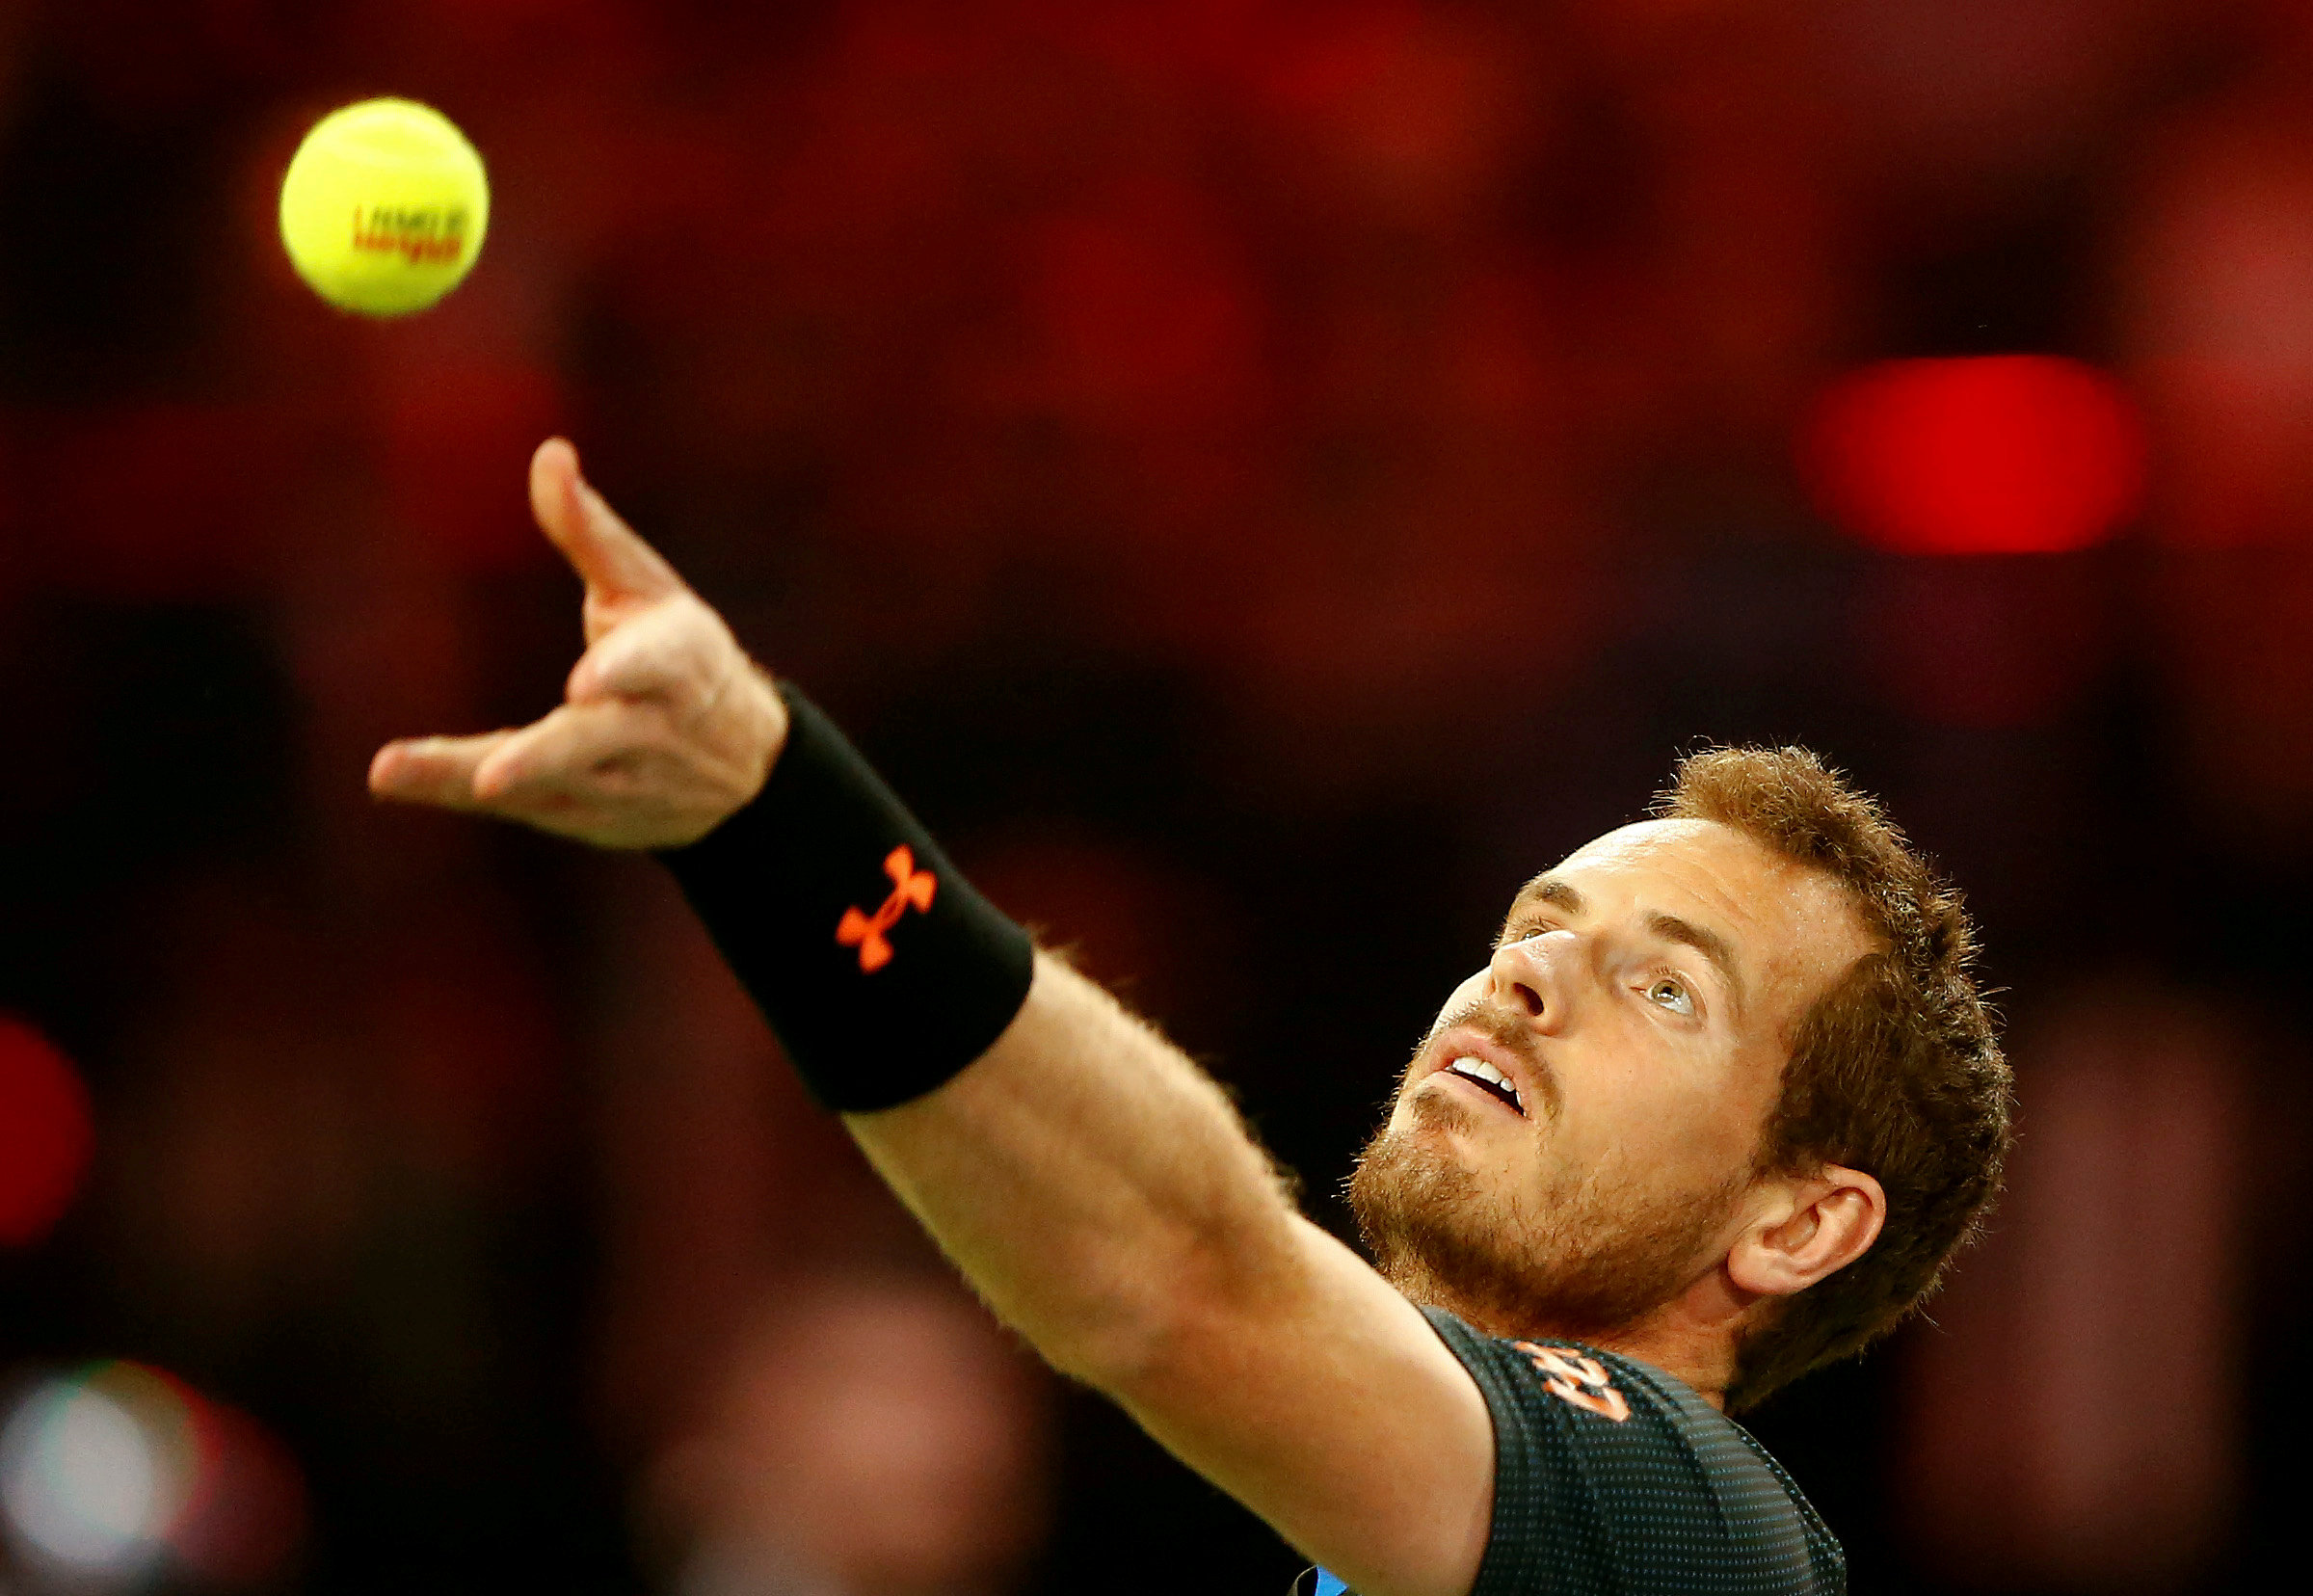 FILE PHOTO: Andy Murray of Britain serves the ball Zurich, Switzerland - 10/04/2017. REUTERS